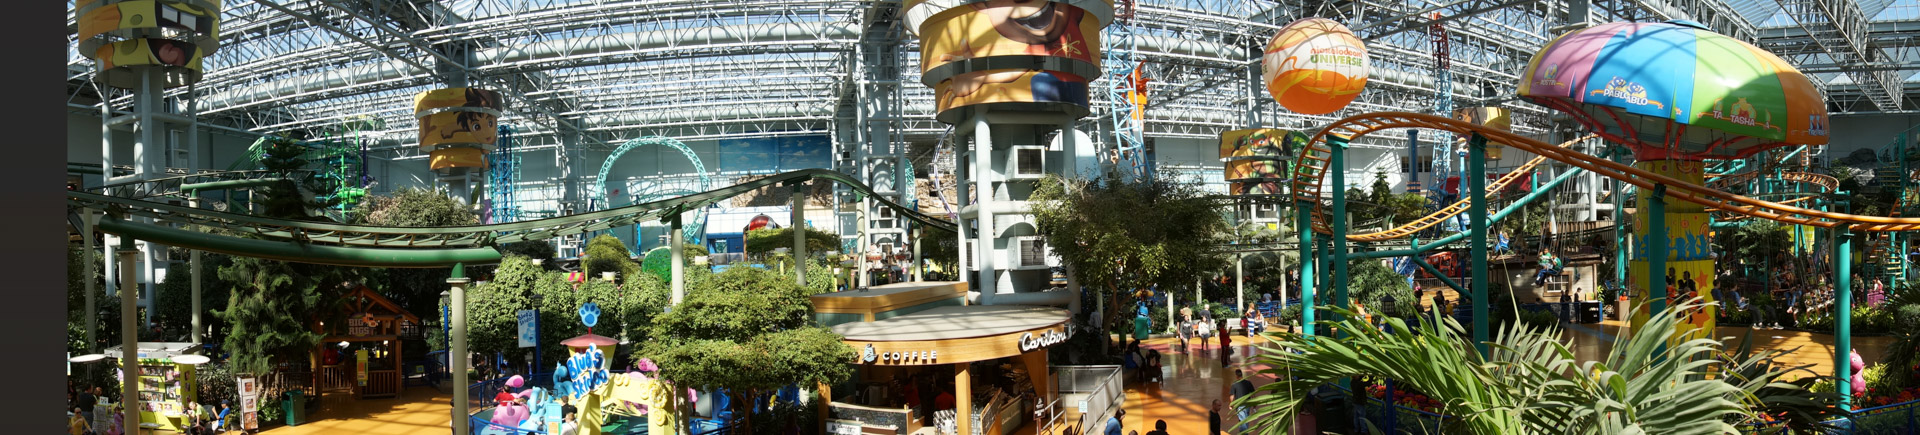 MoA fits an amusement park with 27 rides right in the middle of the Mall.